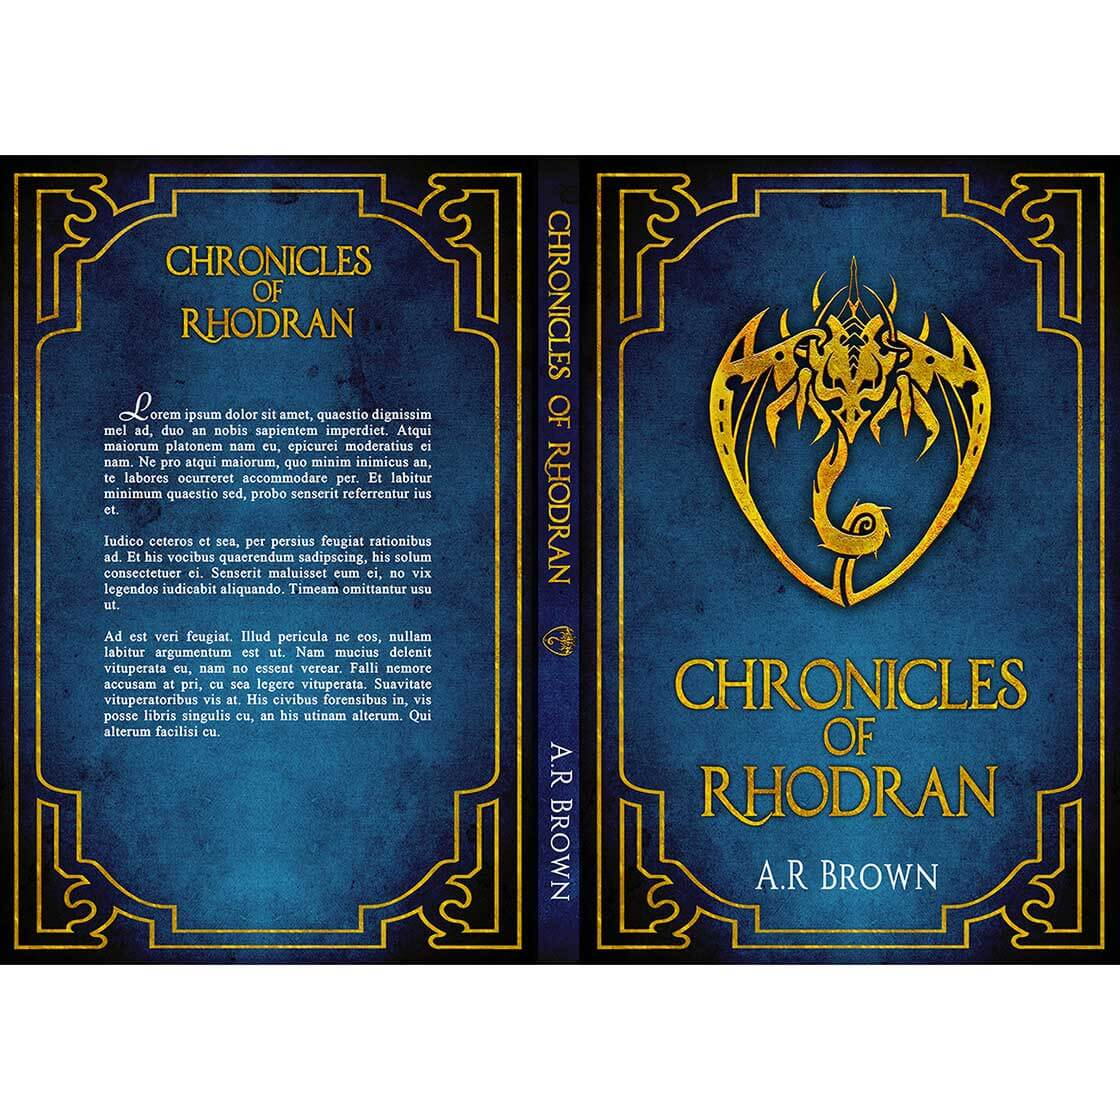 book cover designed by BrokenRose